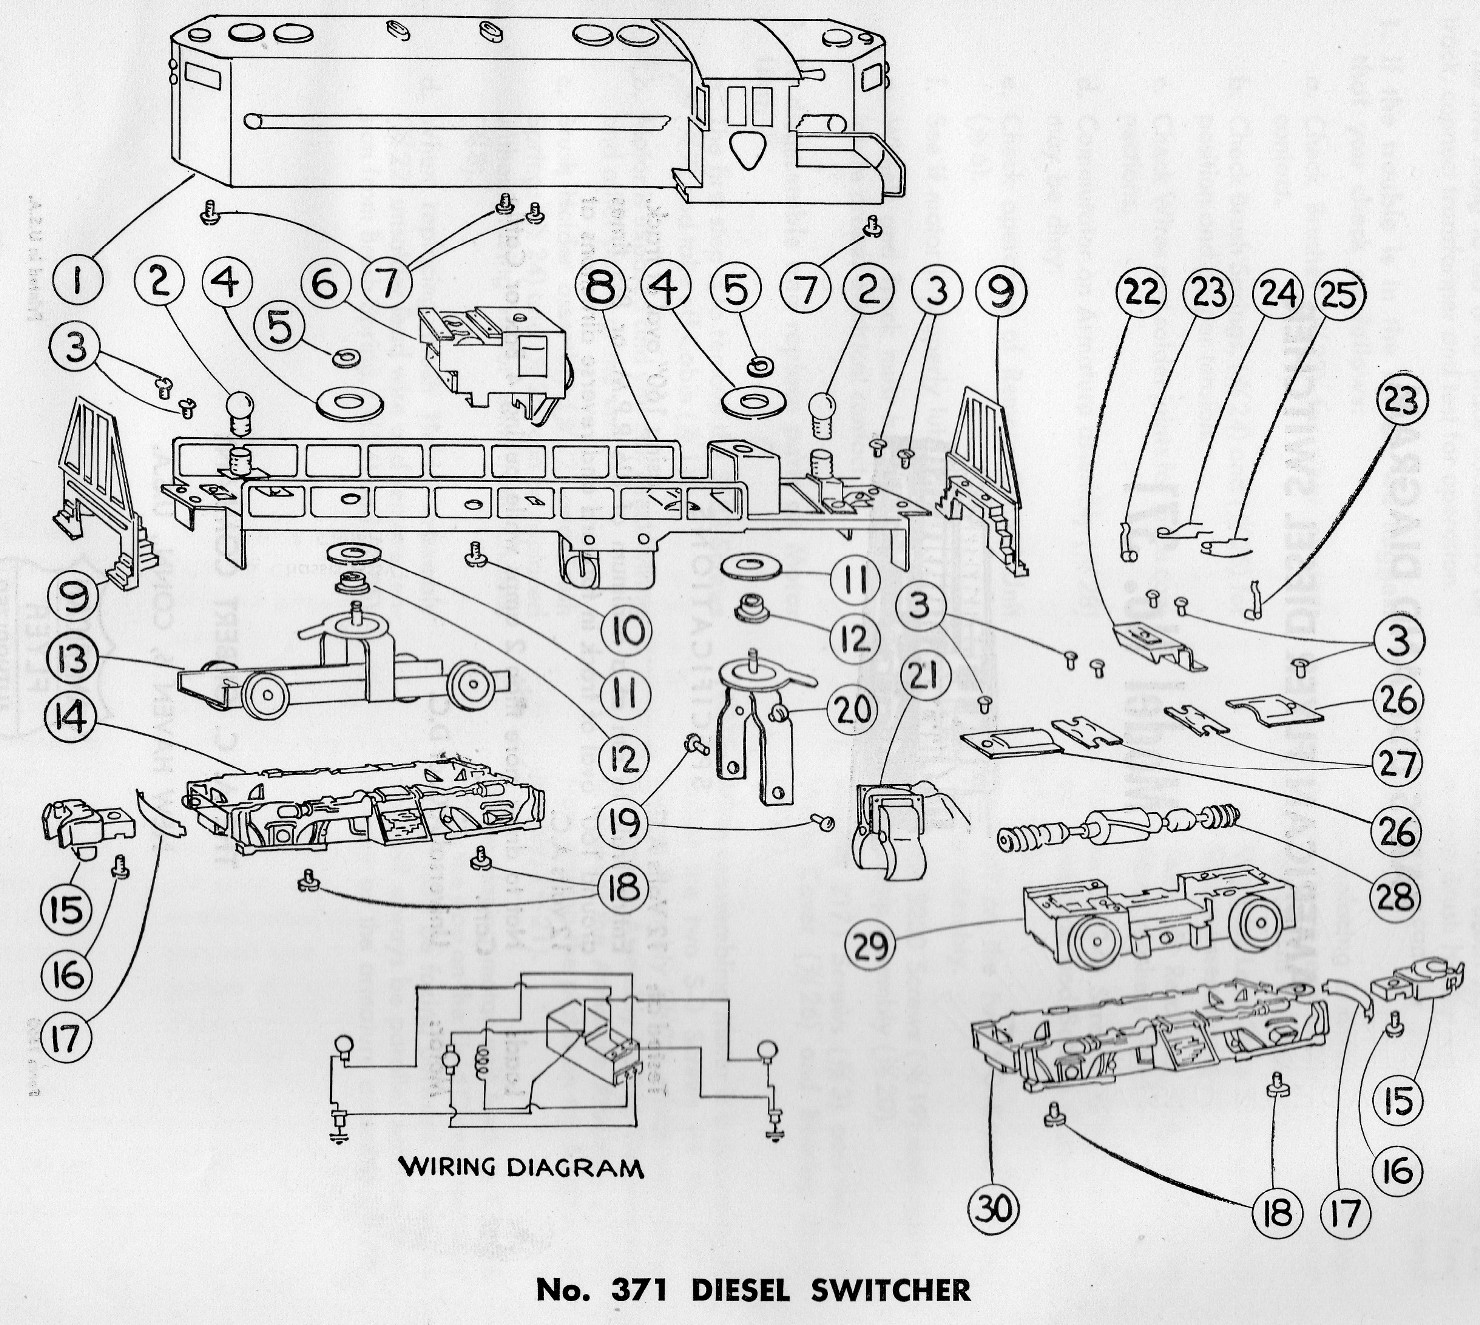 F1560-371-Service-Manual-Lo-Res-002-e1394587647739 American Flyer Wiring Diagrams on american flyer parts diagrams, american flyer track plans, american flyer s gauge track, american flyer reverse unit, american flyer dealer display, american flyer smoke unit repair, american repair service flyer, american flyer knuckle couplers, dodge truck electrical diagrams, pinout diagrams, american flyer locomotive diagram, american auto wire diagrams, american flyer s gauge layouts, american flyer trains, american flyer logo, cable reeving diagrams, american flyer accessories,